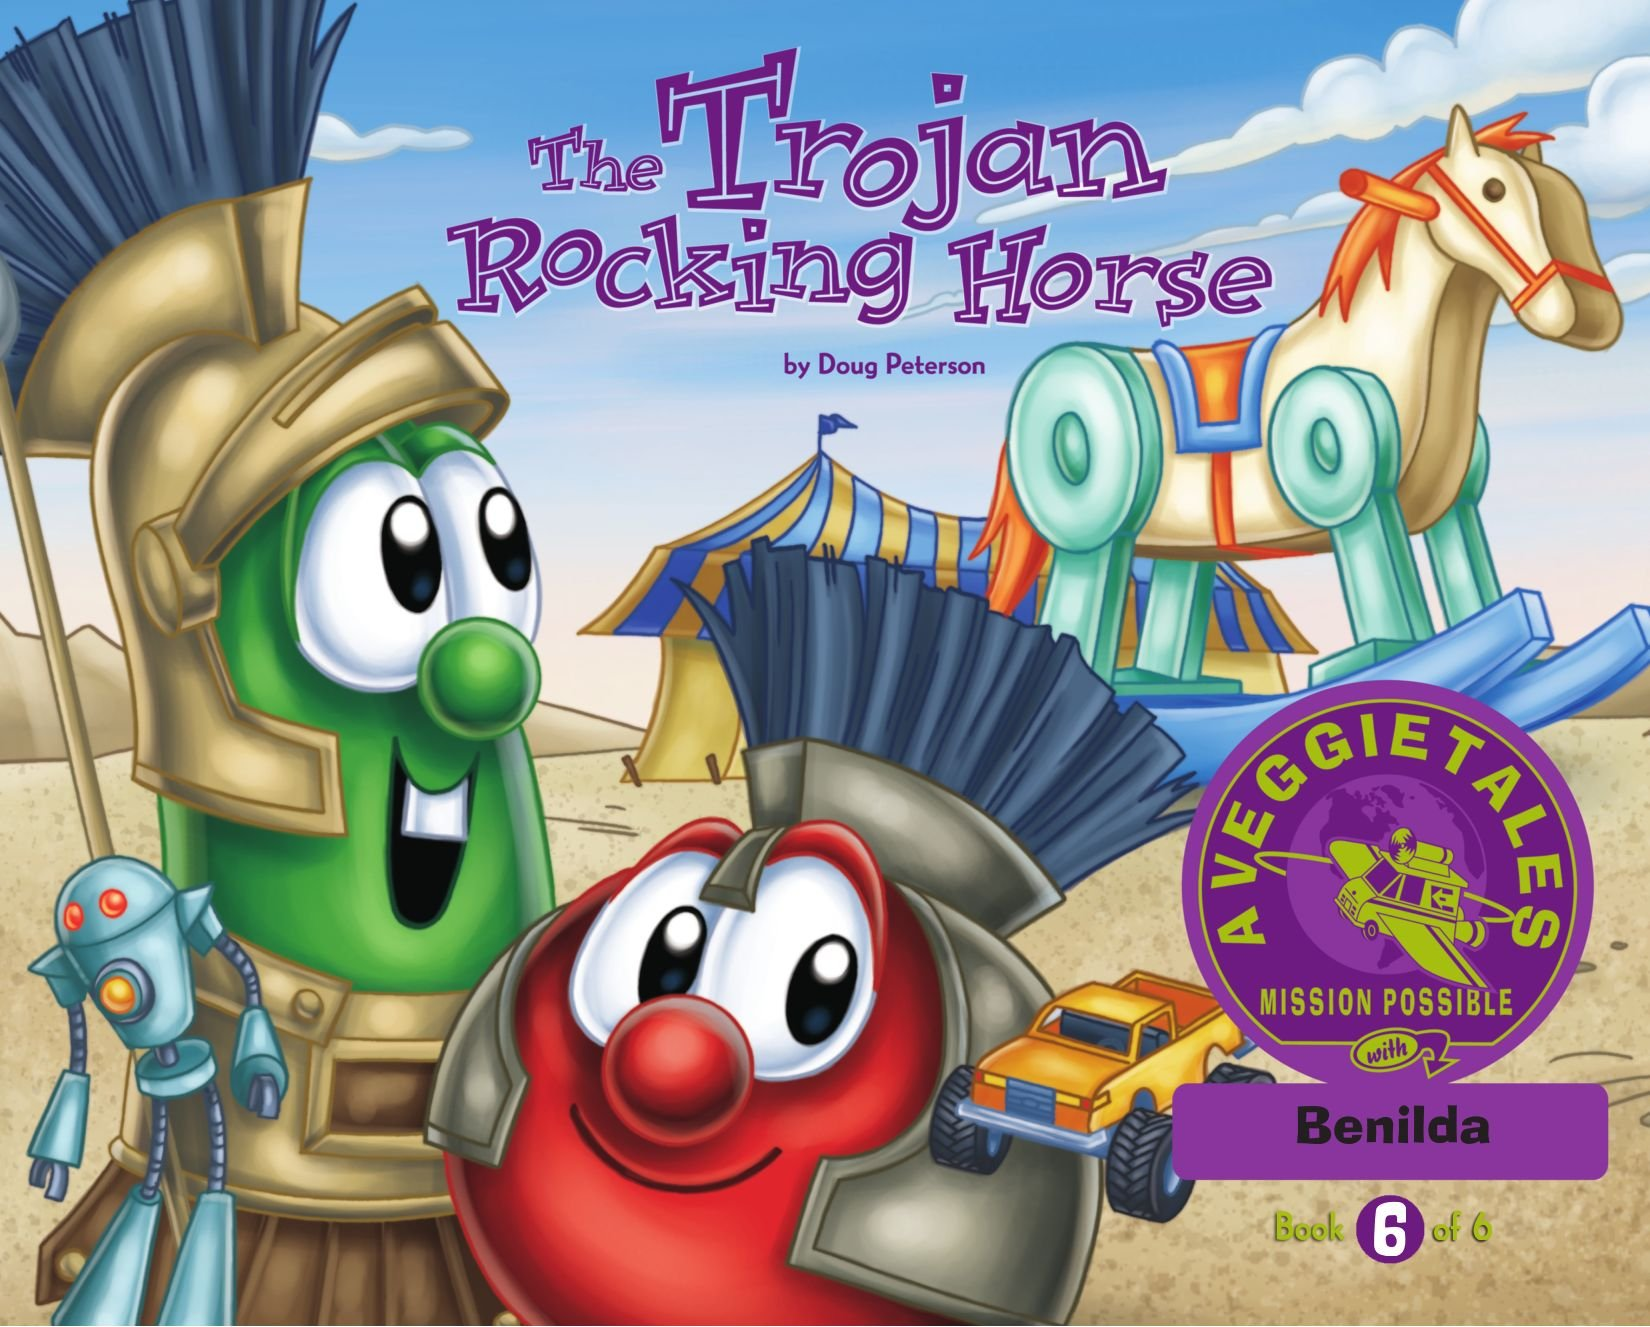 The Trojan Rocking Horse - VeggieTales Mission Possible Adventure Series #6: Personalized for Benilda (Boy) pdf